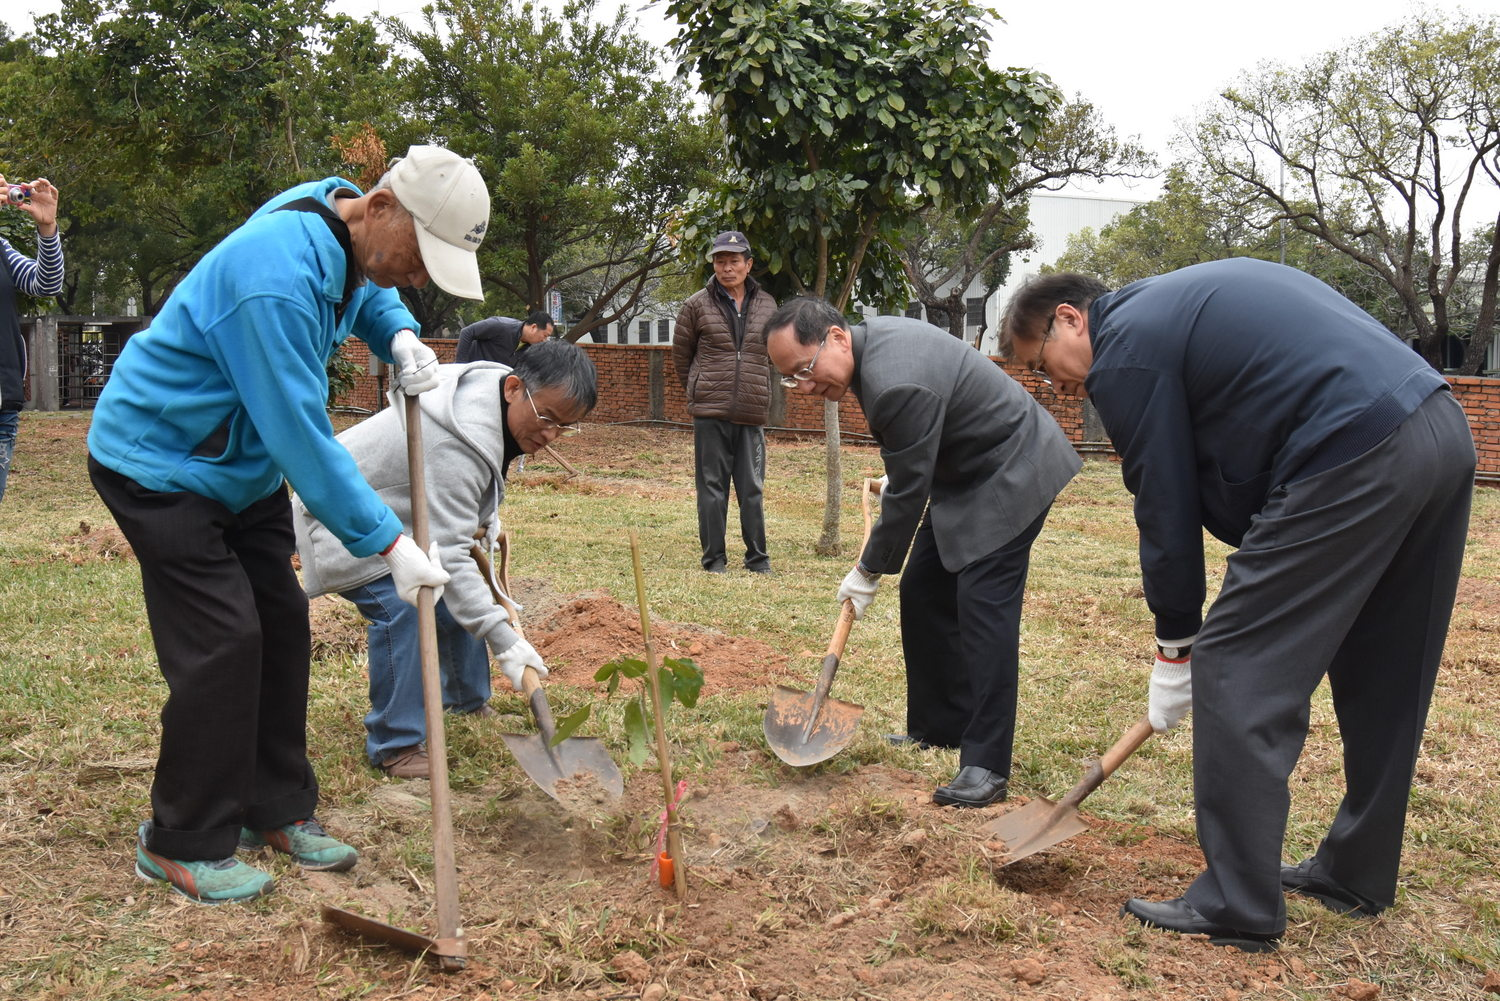 Tunghai President Mao-Jiun Wang led management and staff to plant trees.